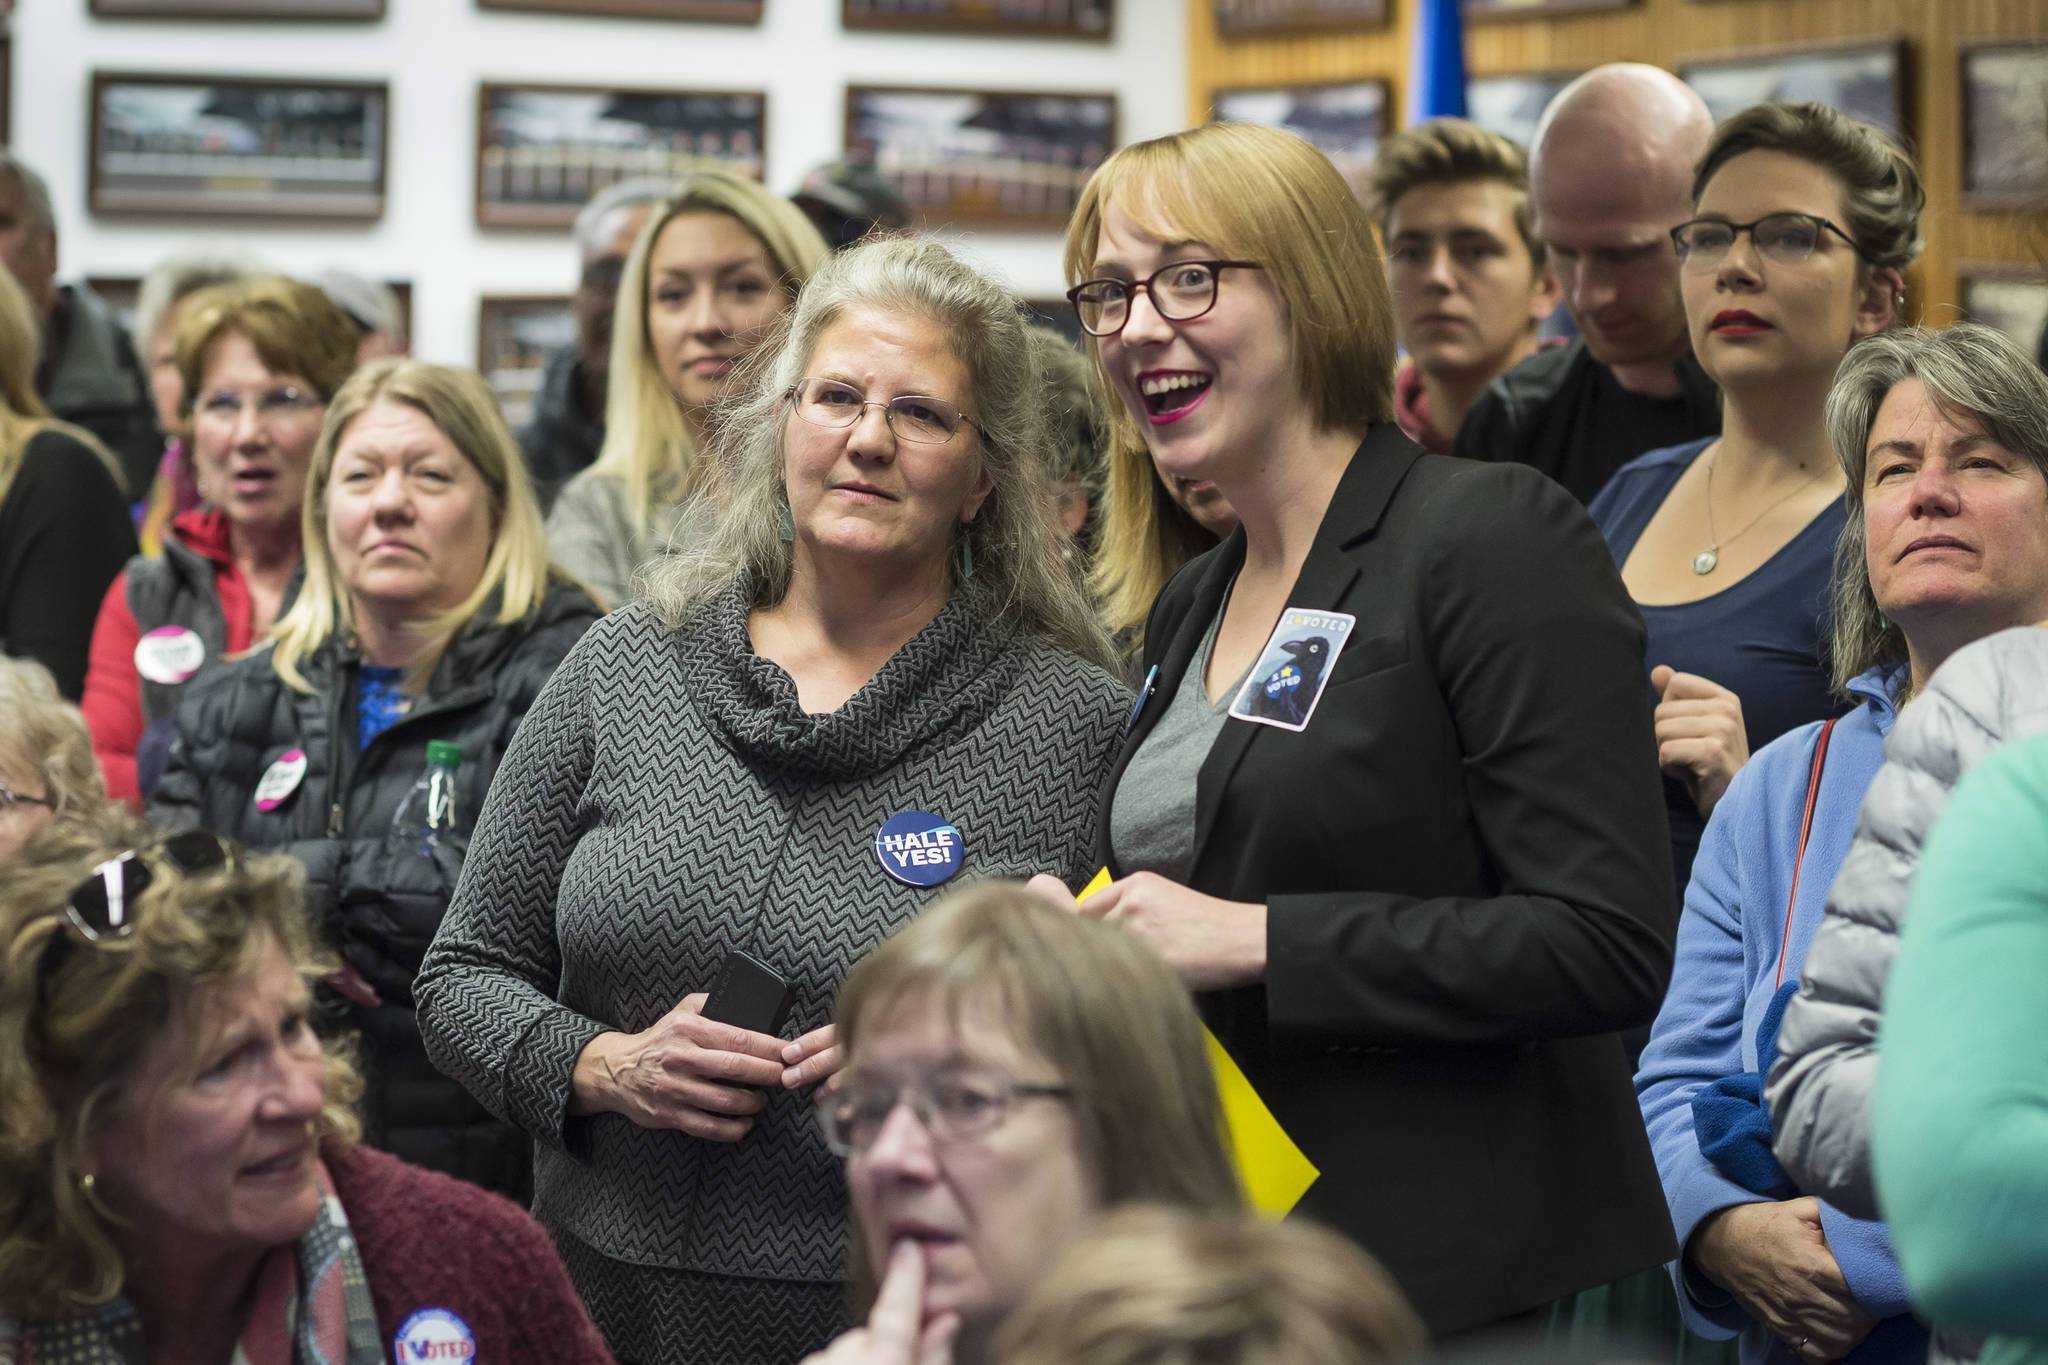 Assembly District 2 candidate Michelle Bonnet Hale, left center, and Assembly Areawide candidate Carole Triem watch their numbers soar as they watch Election results come in at the Assembly chambers on Tuesday, Oct. 2, 2018. (Michael Penn | Juneau Empire)